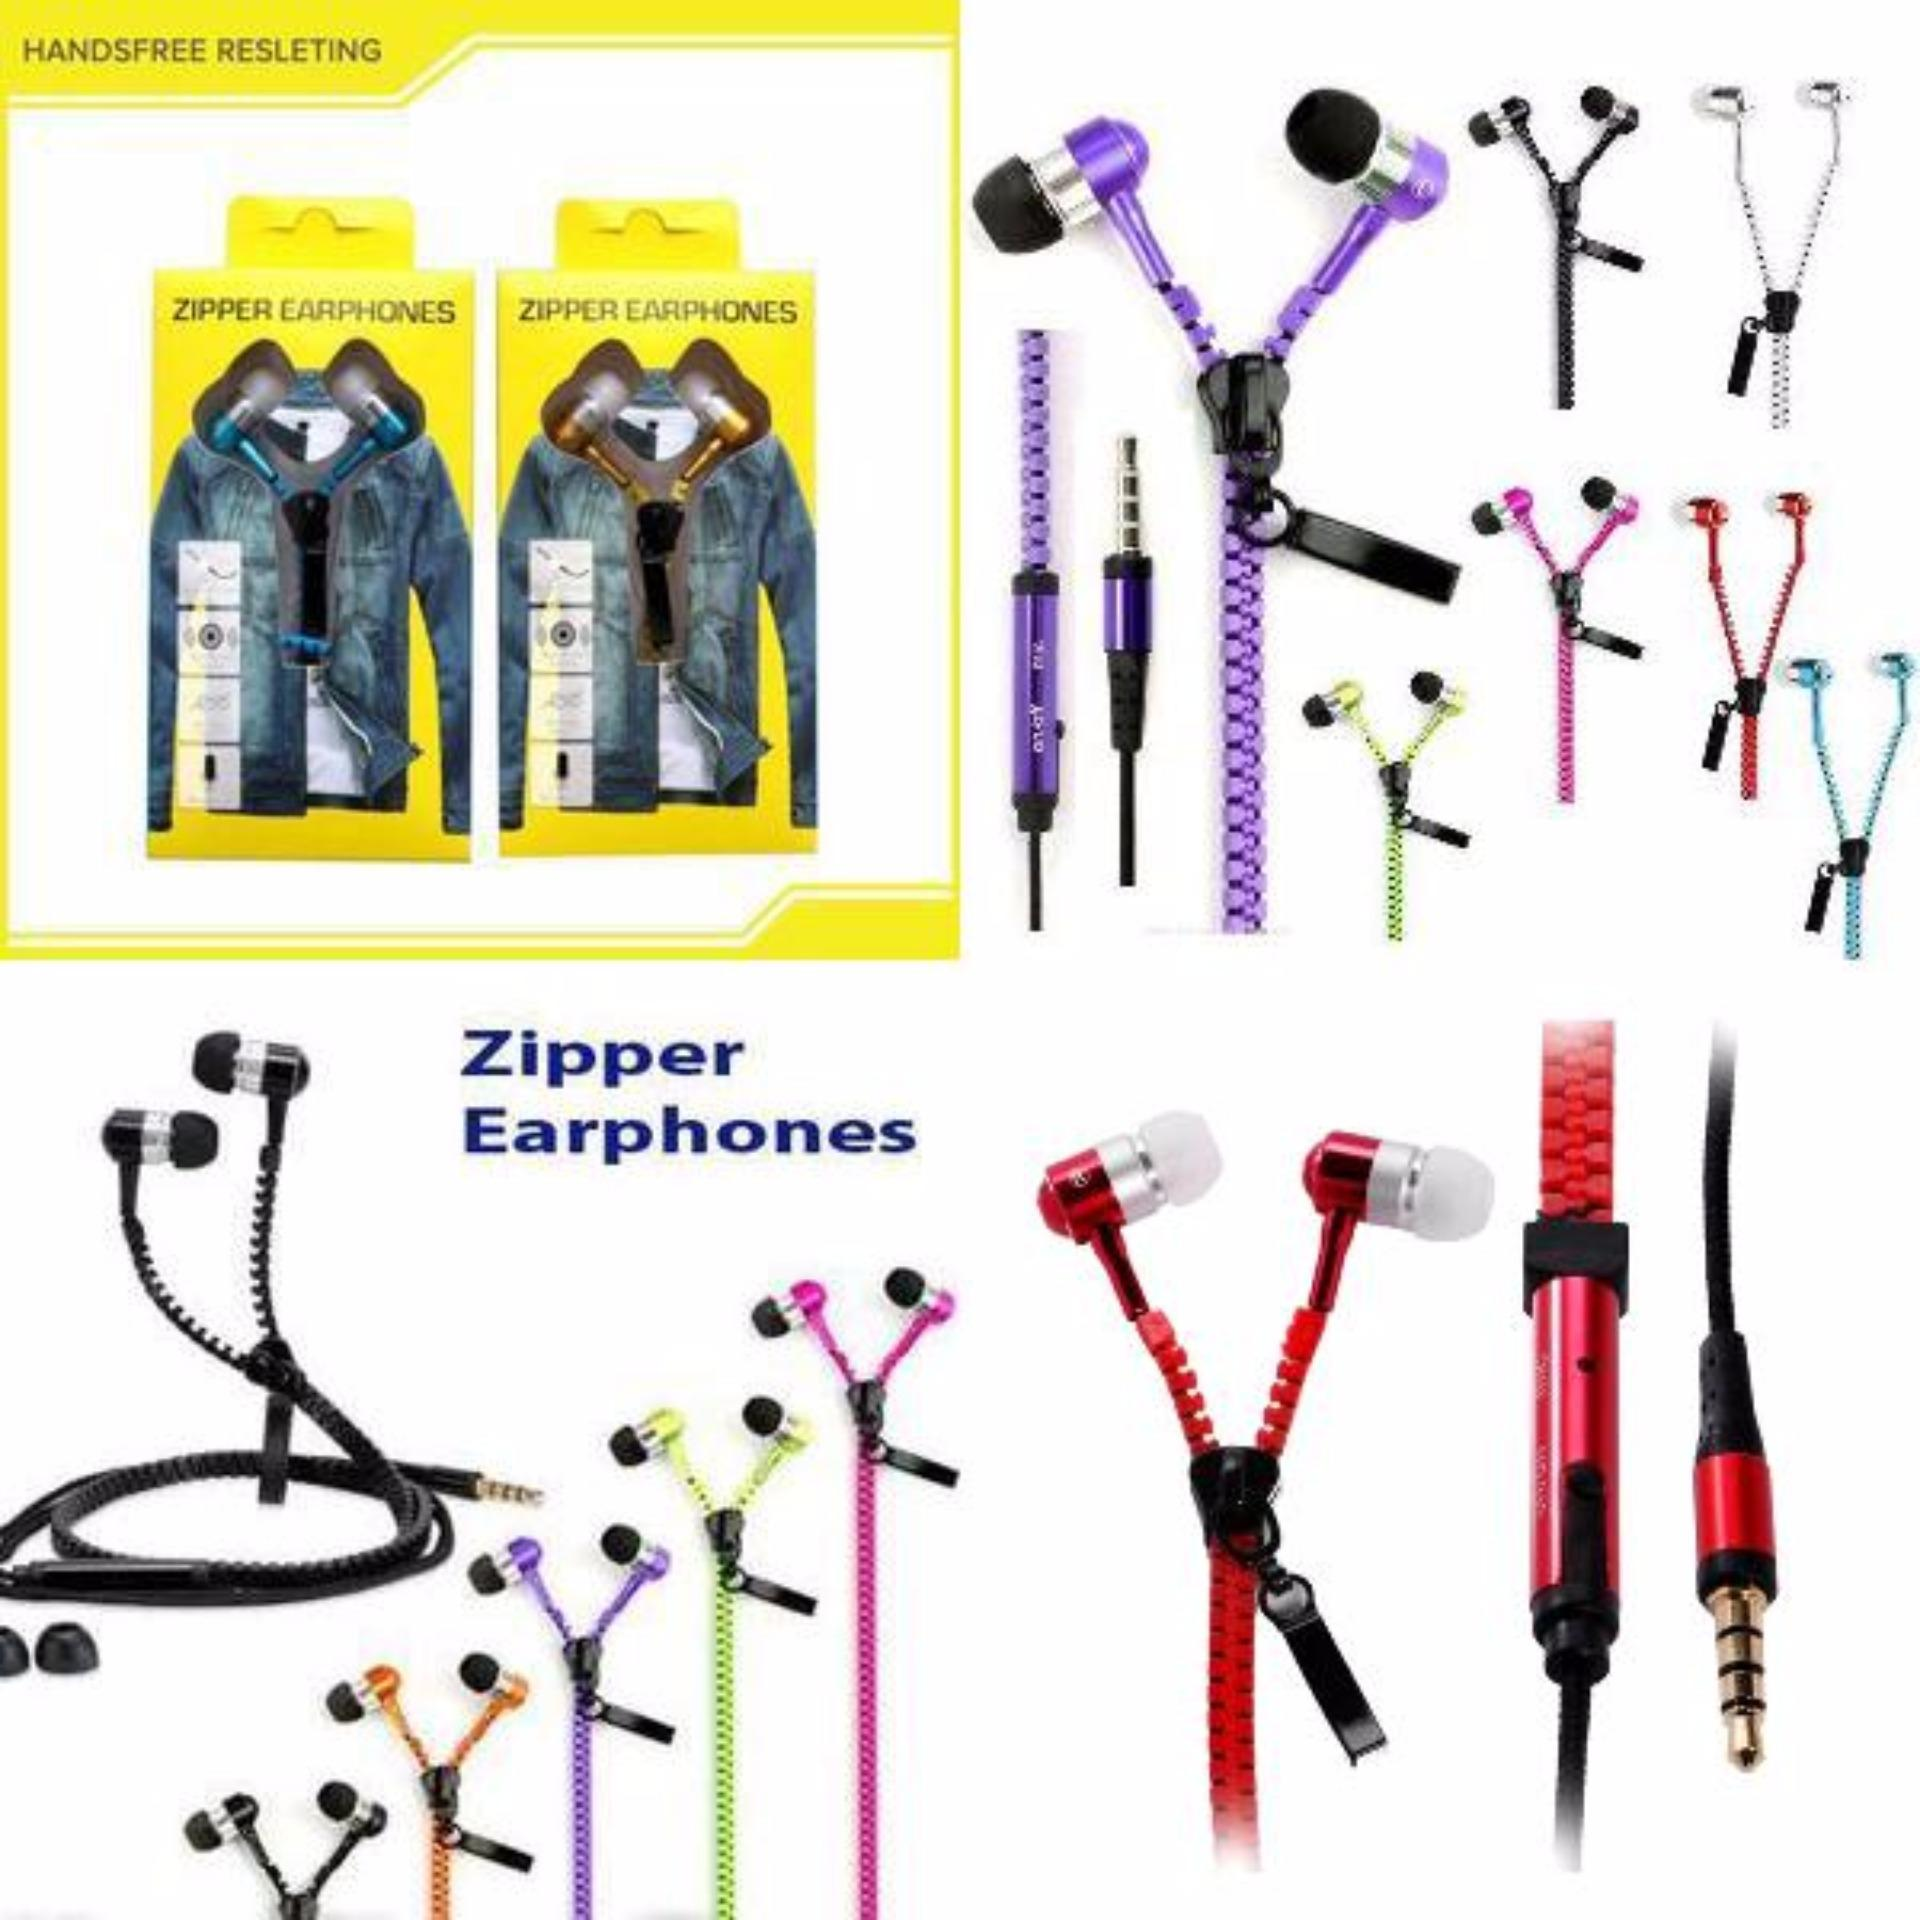 Spesifikasi Zipper Earphones Handsfree Headset Stereo Bass In Ear Wired Headset 3 5Mm Murah Berkualitas